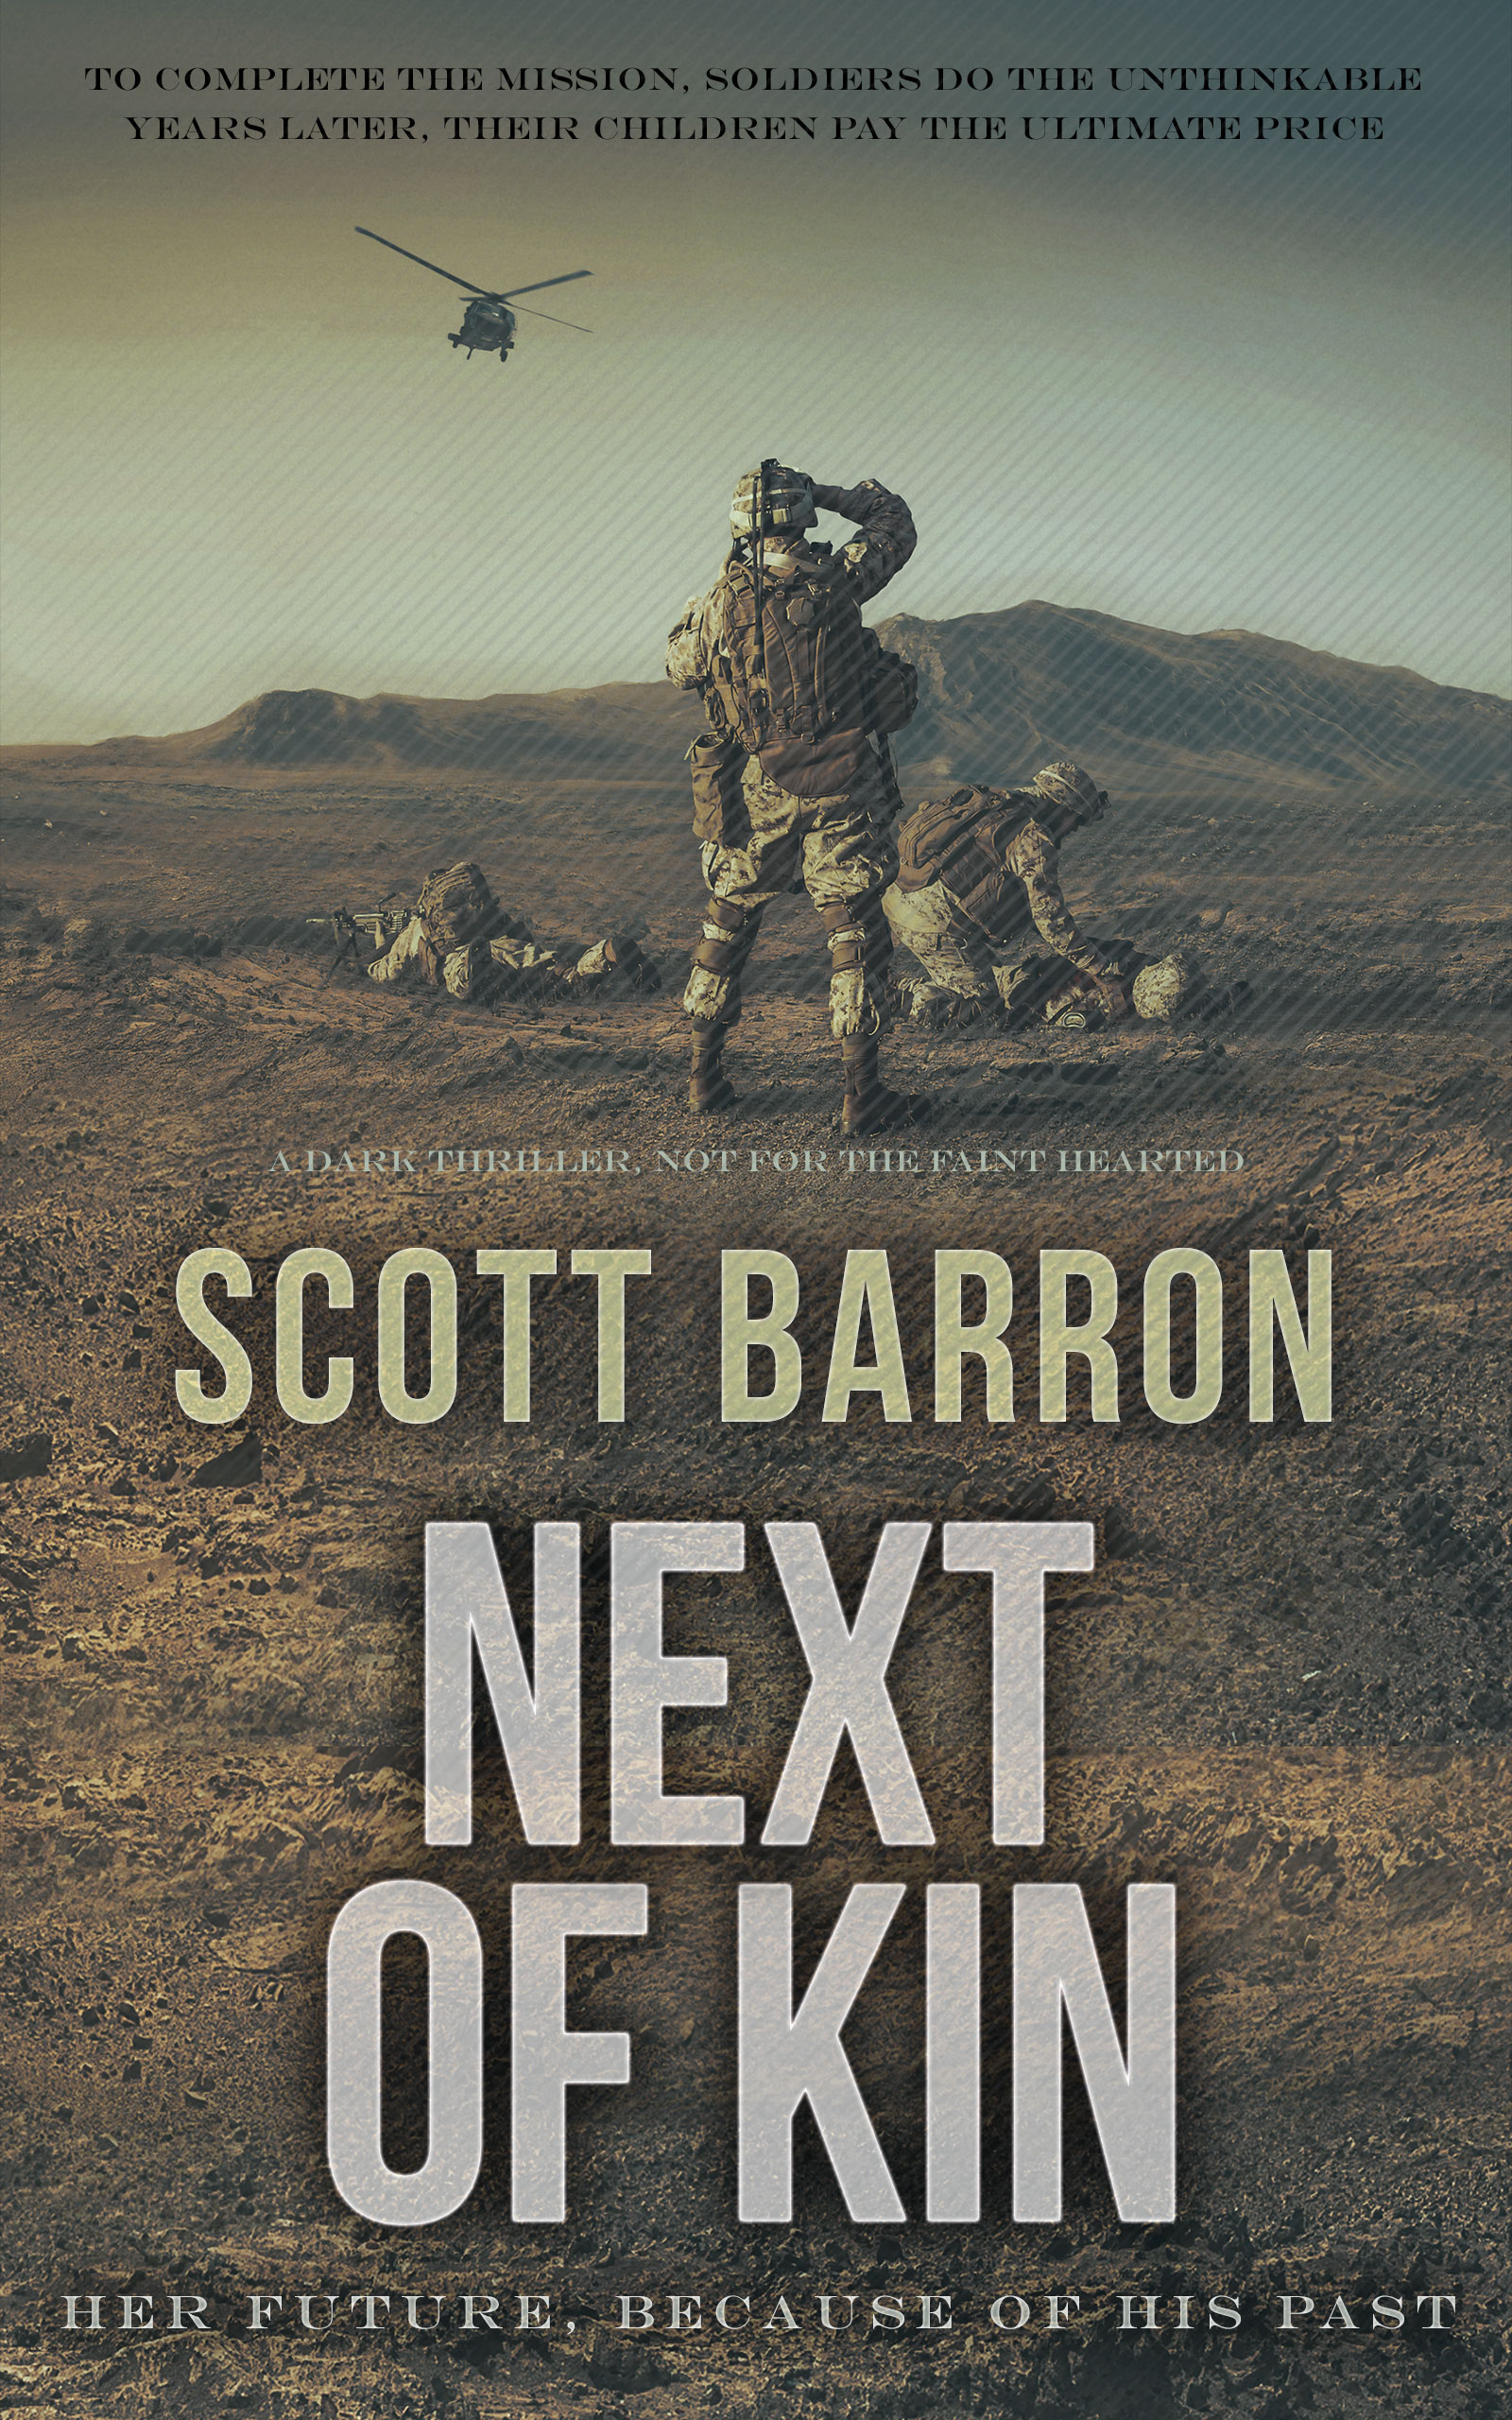 Next of Kin by Scott Barron is available now on Amazon